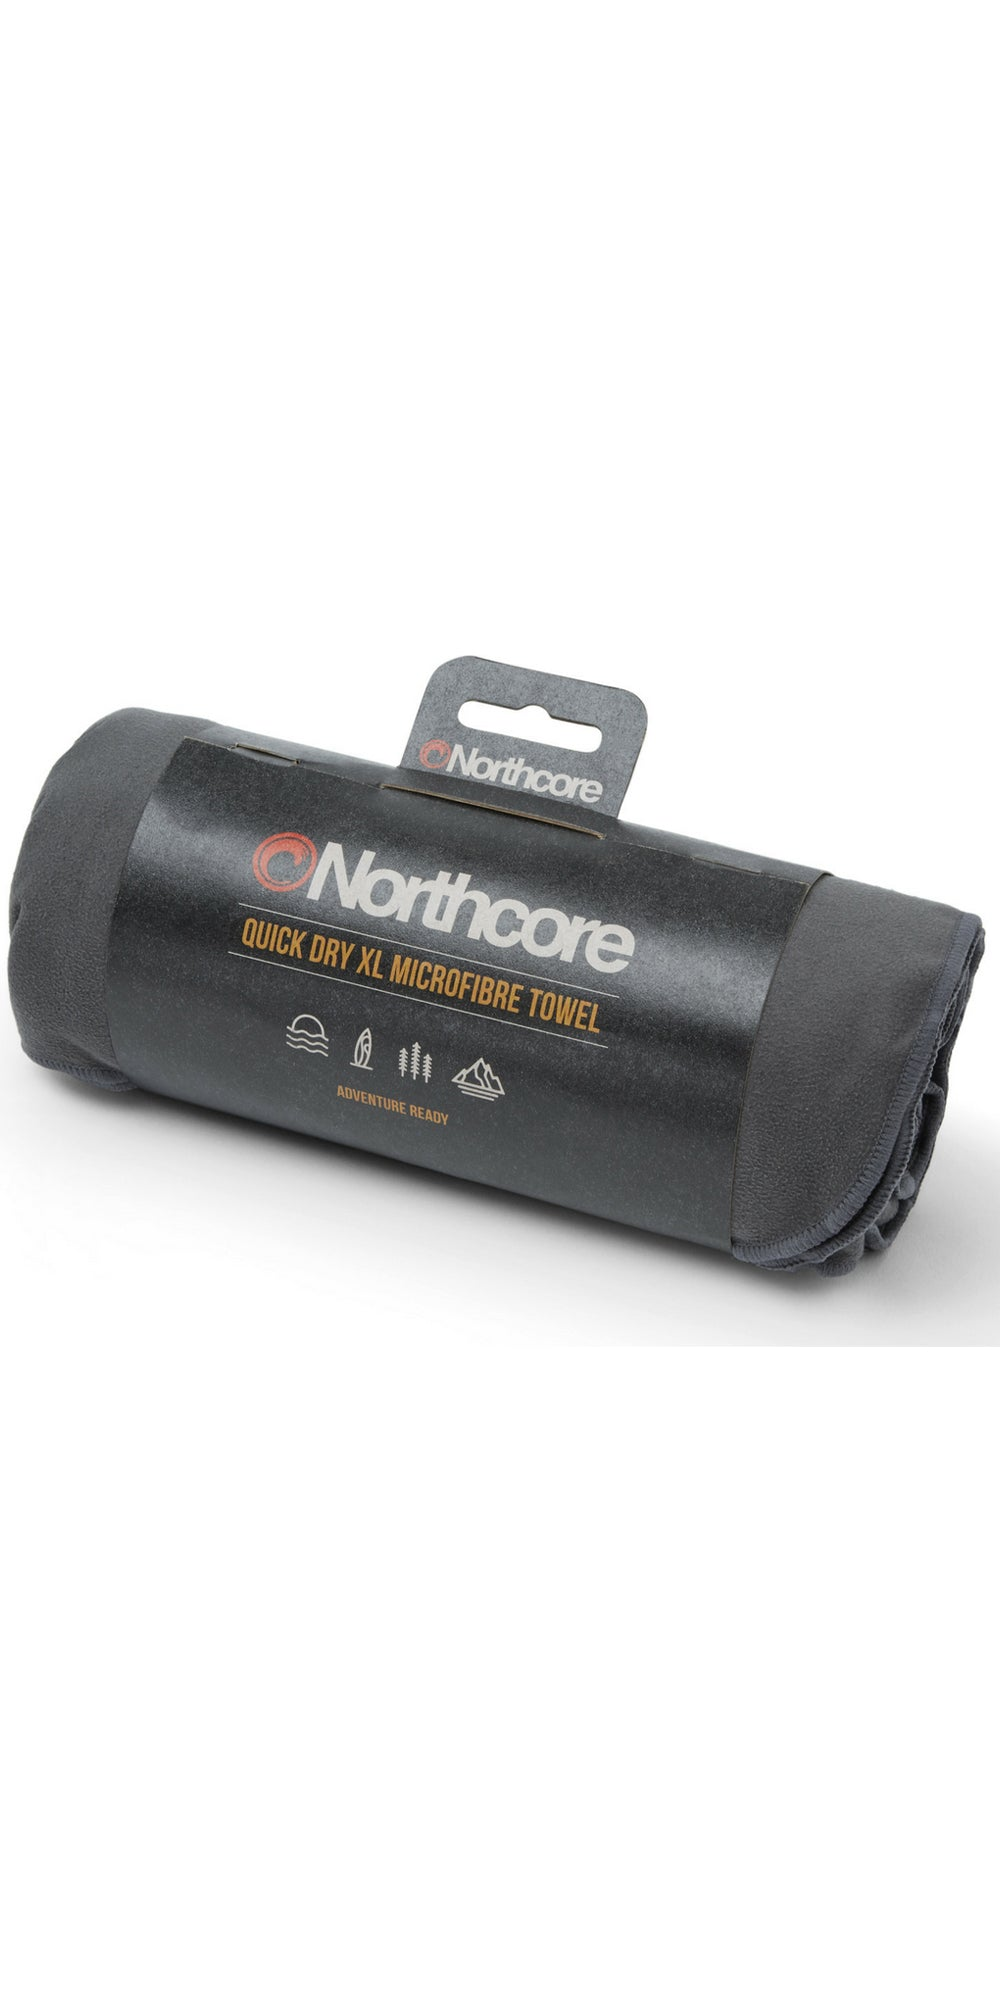 Northcore quick dry XL microfibre towel